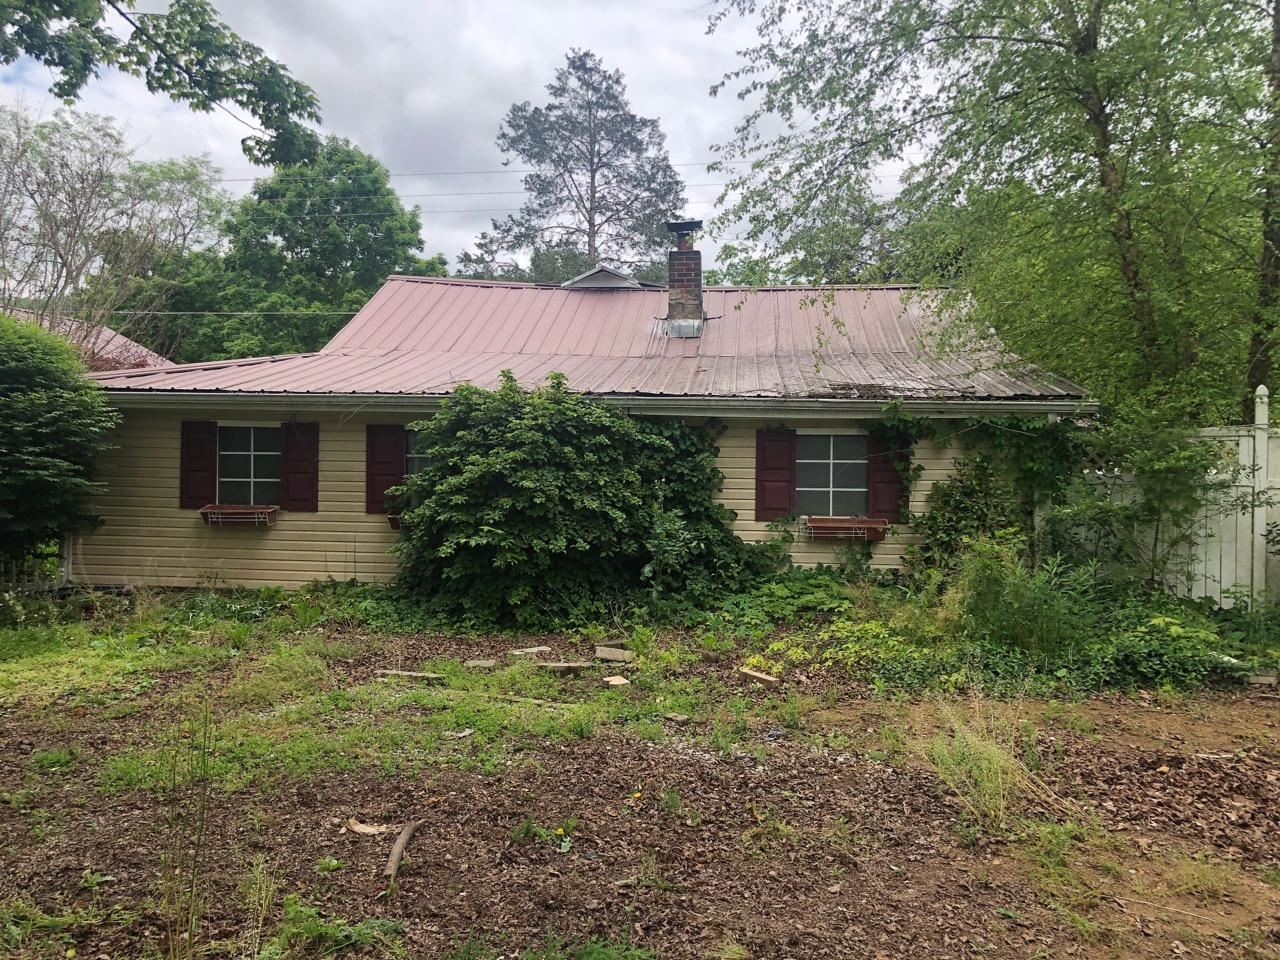 Photo of 9146 Andersonville Pike, Powell, TN 37849 (MLS # 1119729)